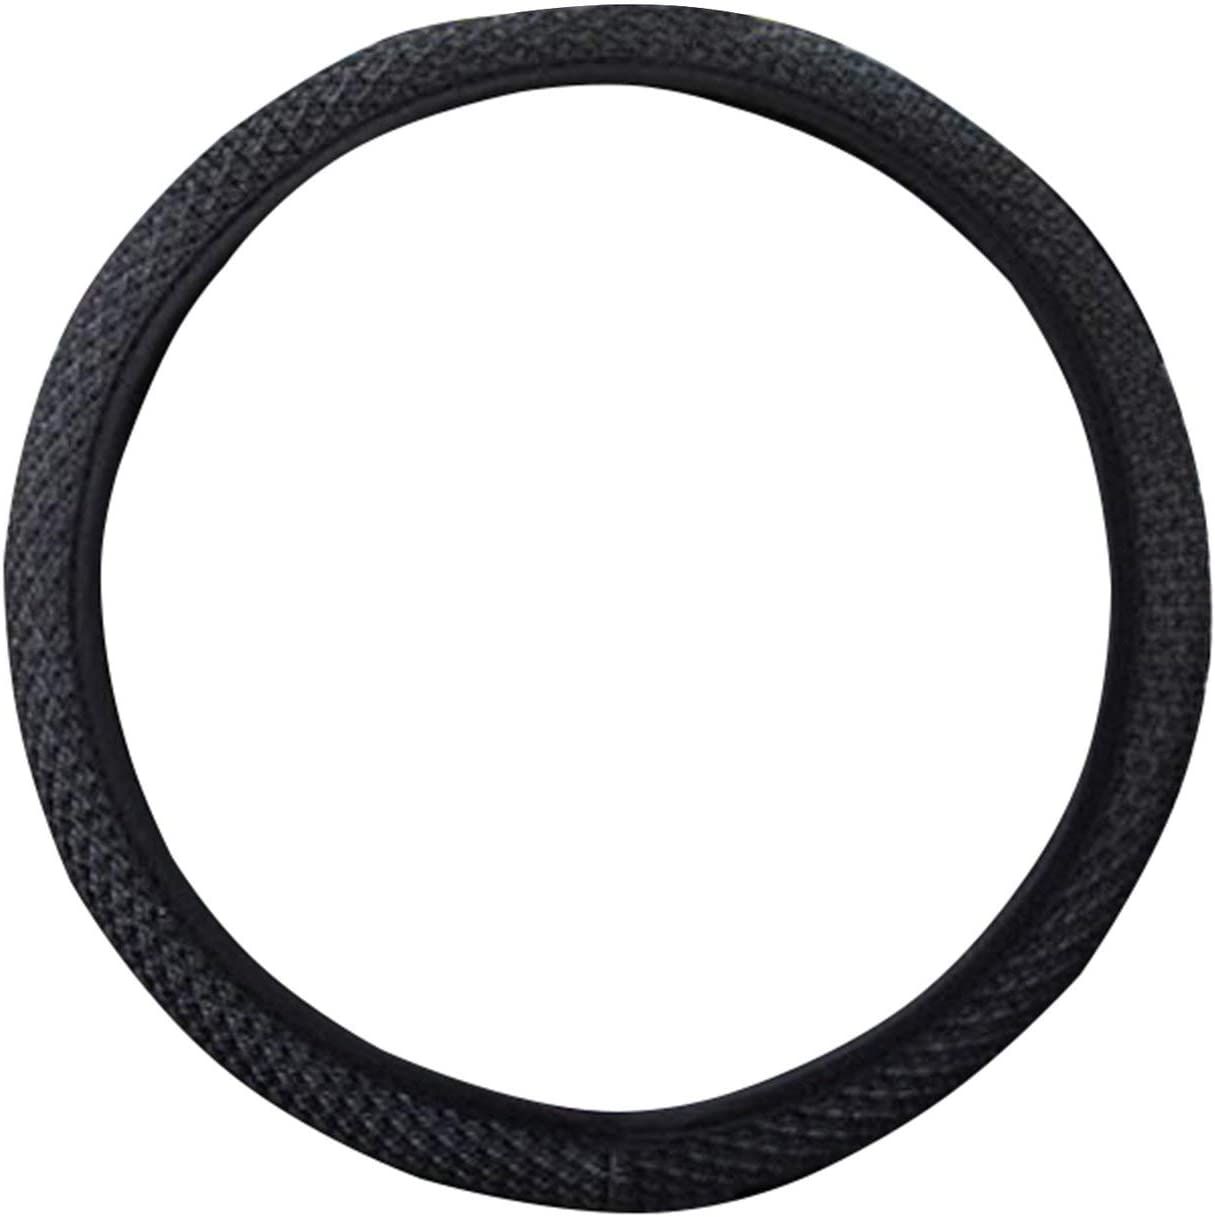 Black JIUY Universal Car Steering Wheel Cover Ice Silk Car Handle Covers Car-styling Microfiber Leather Wear-resistant